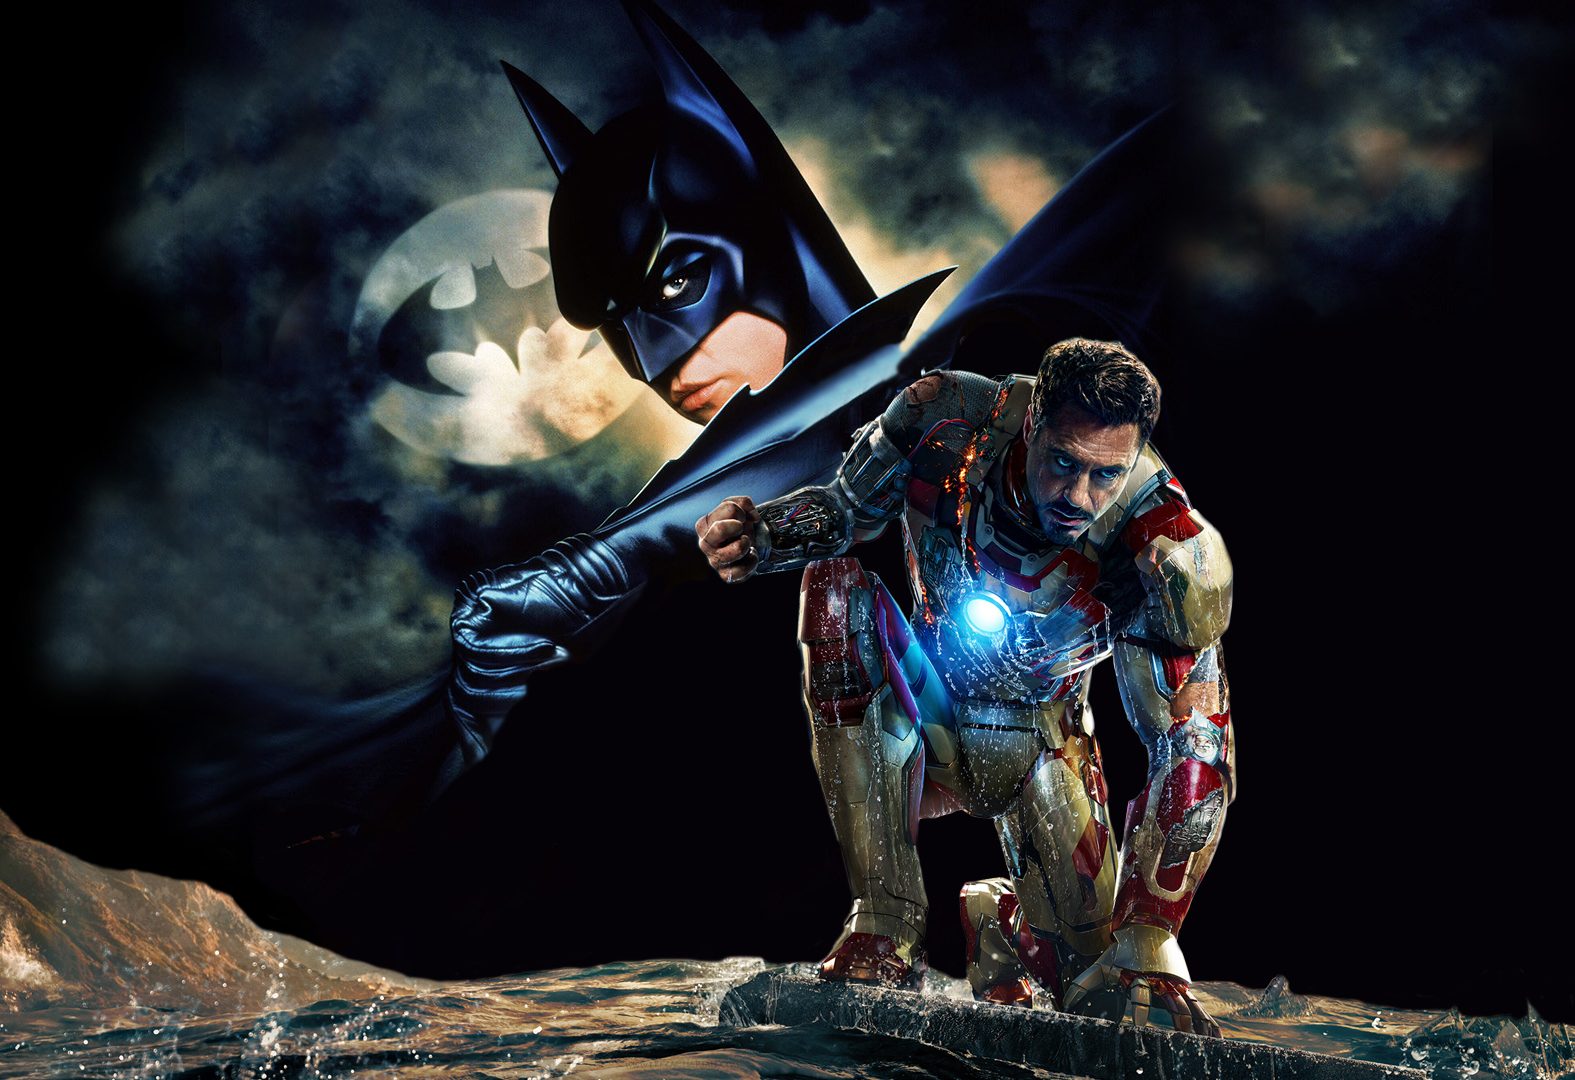 Batman vs Iron Man | Lee Zachariah